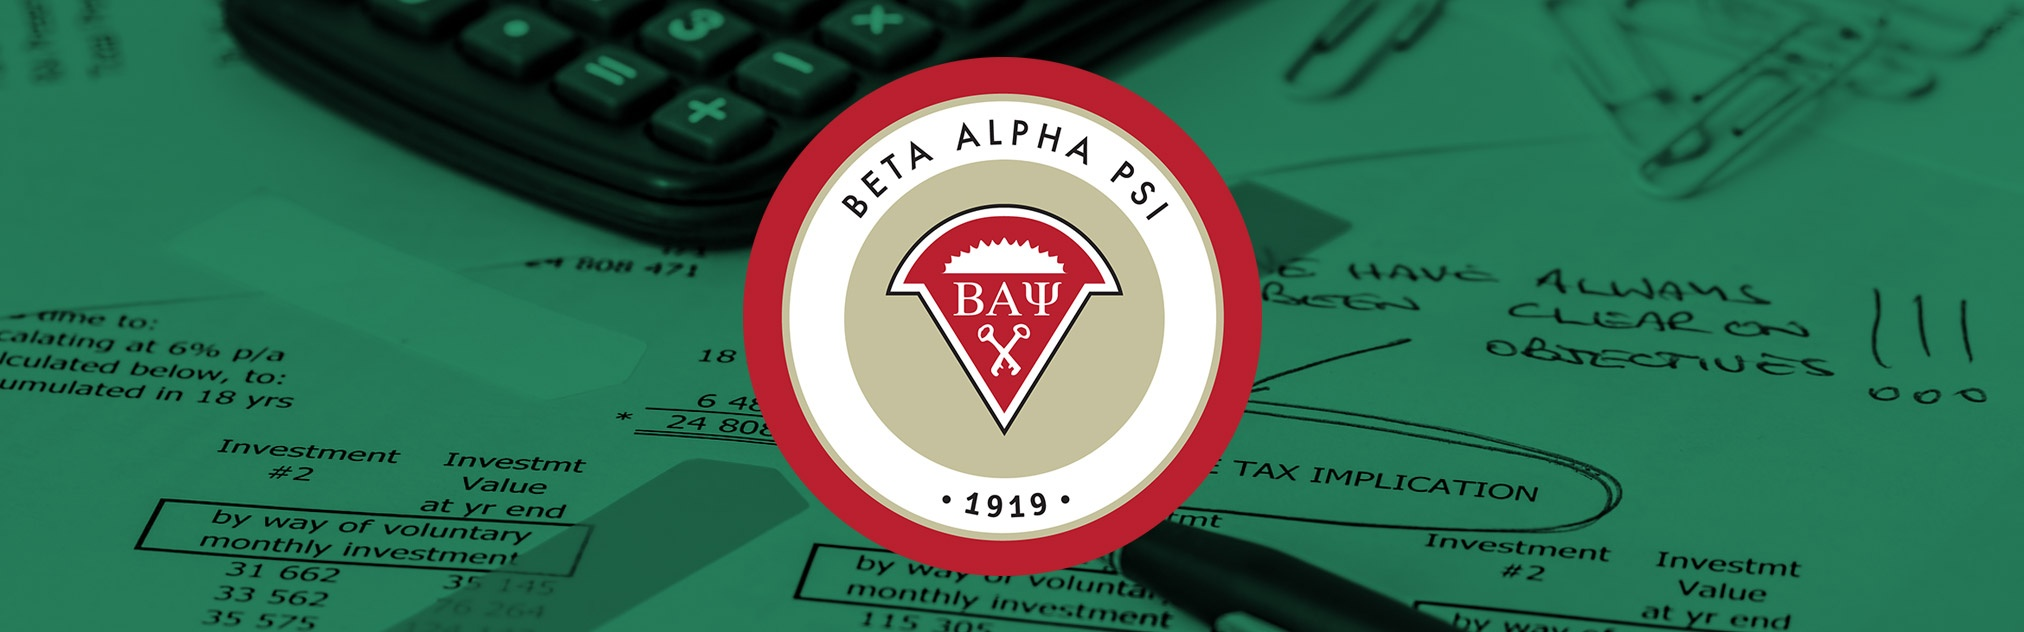 BAP logo against background of tax paperwork